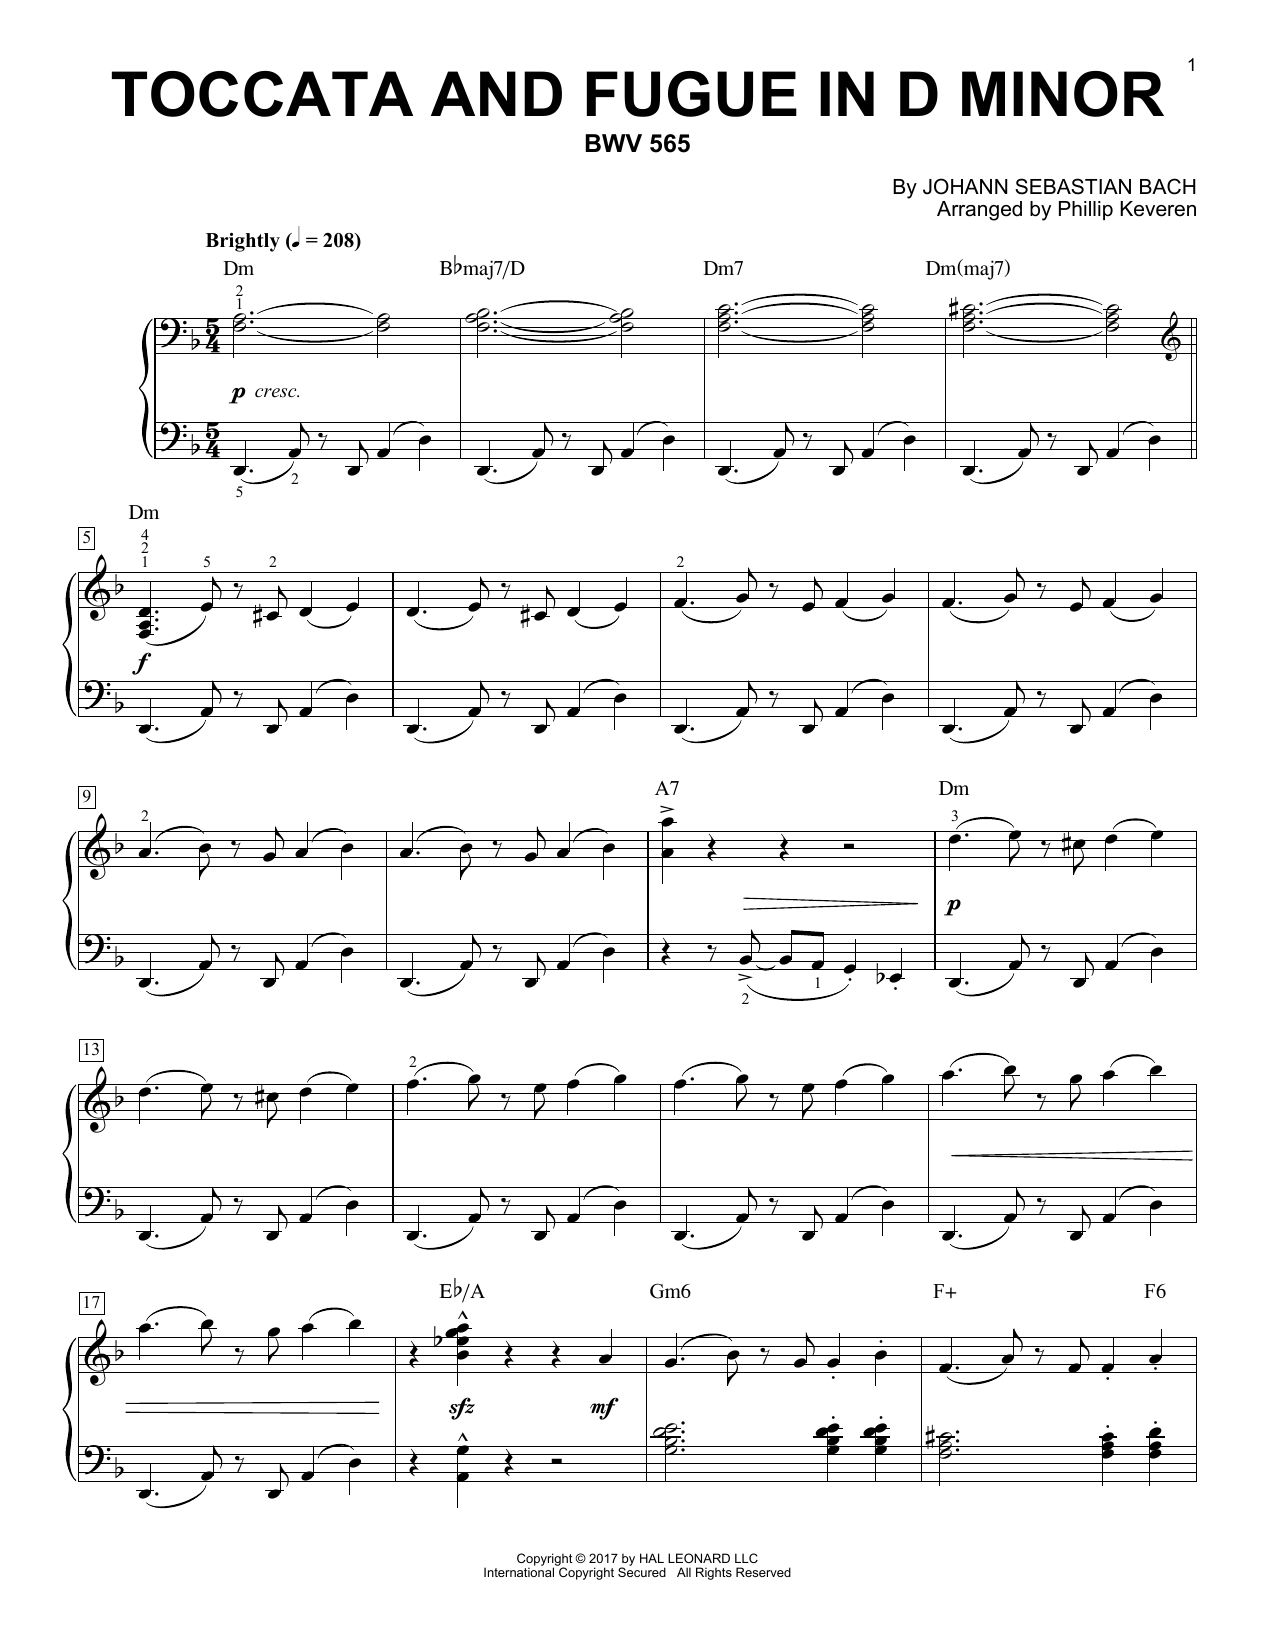 Johann Sebastian Bach Toccata And Fugue In D Minor, BWV 565 [Jazz version] (arr. Phillip Keveren) sheet music notes and chords. Download Printable PDF.